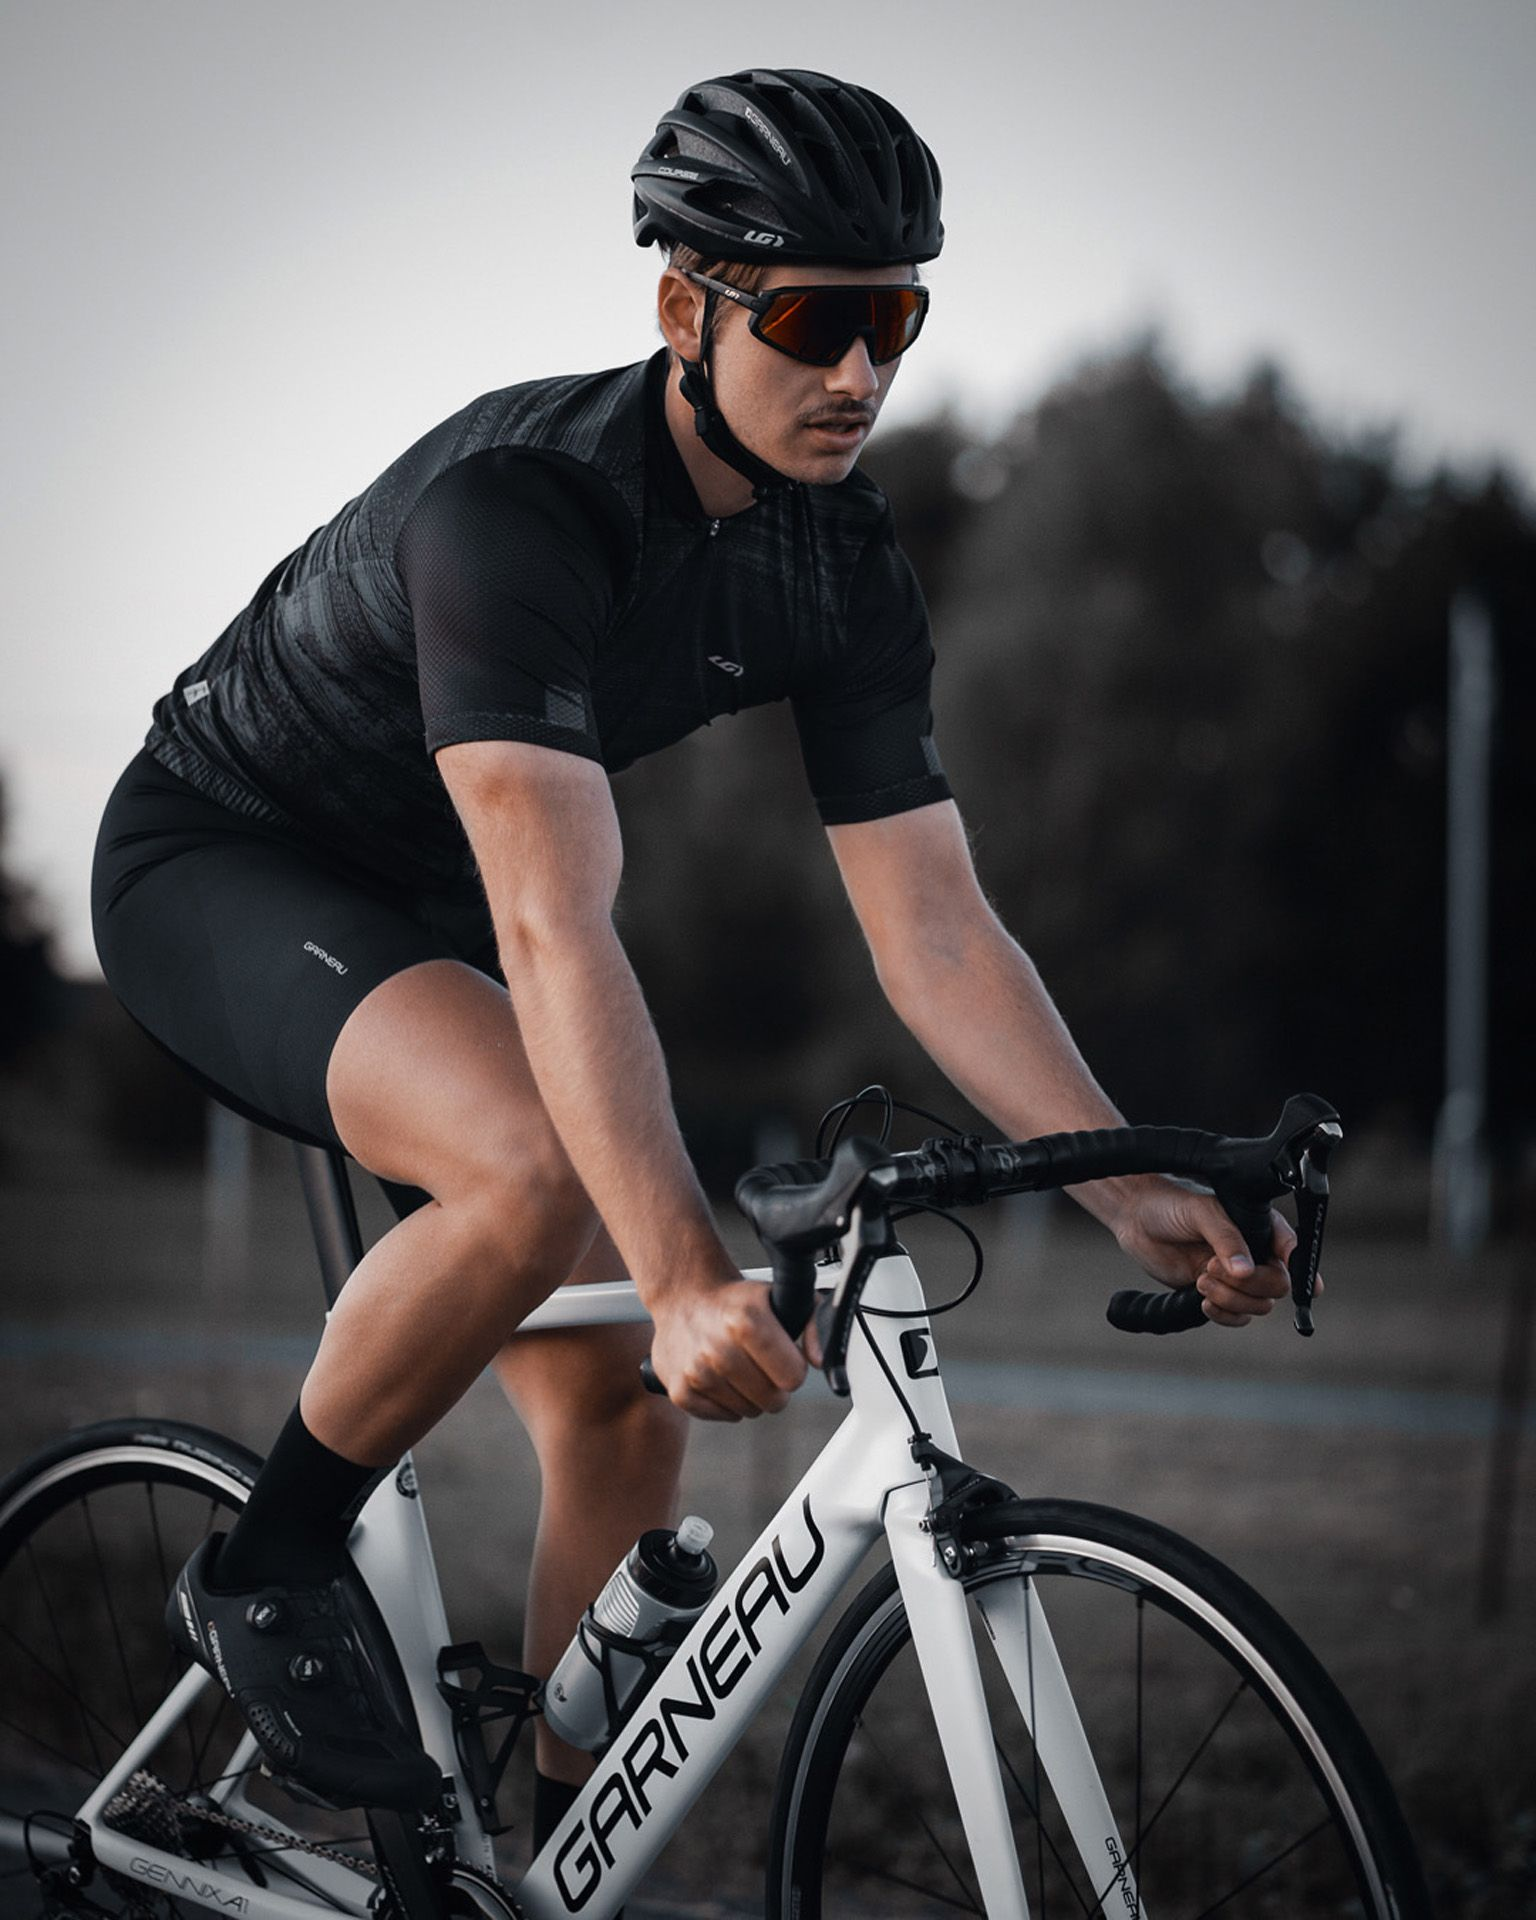 male model wearing black bike helmet and black biking bodysuit with sunglasses biking on road on a white sports bike for Spring Summer 2020 campaign of Louis Garneau with artistic direction and styling by Studio TB